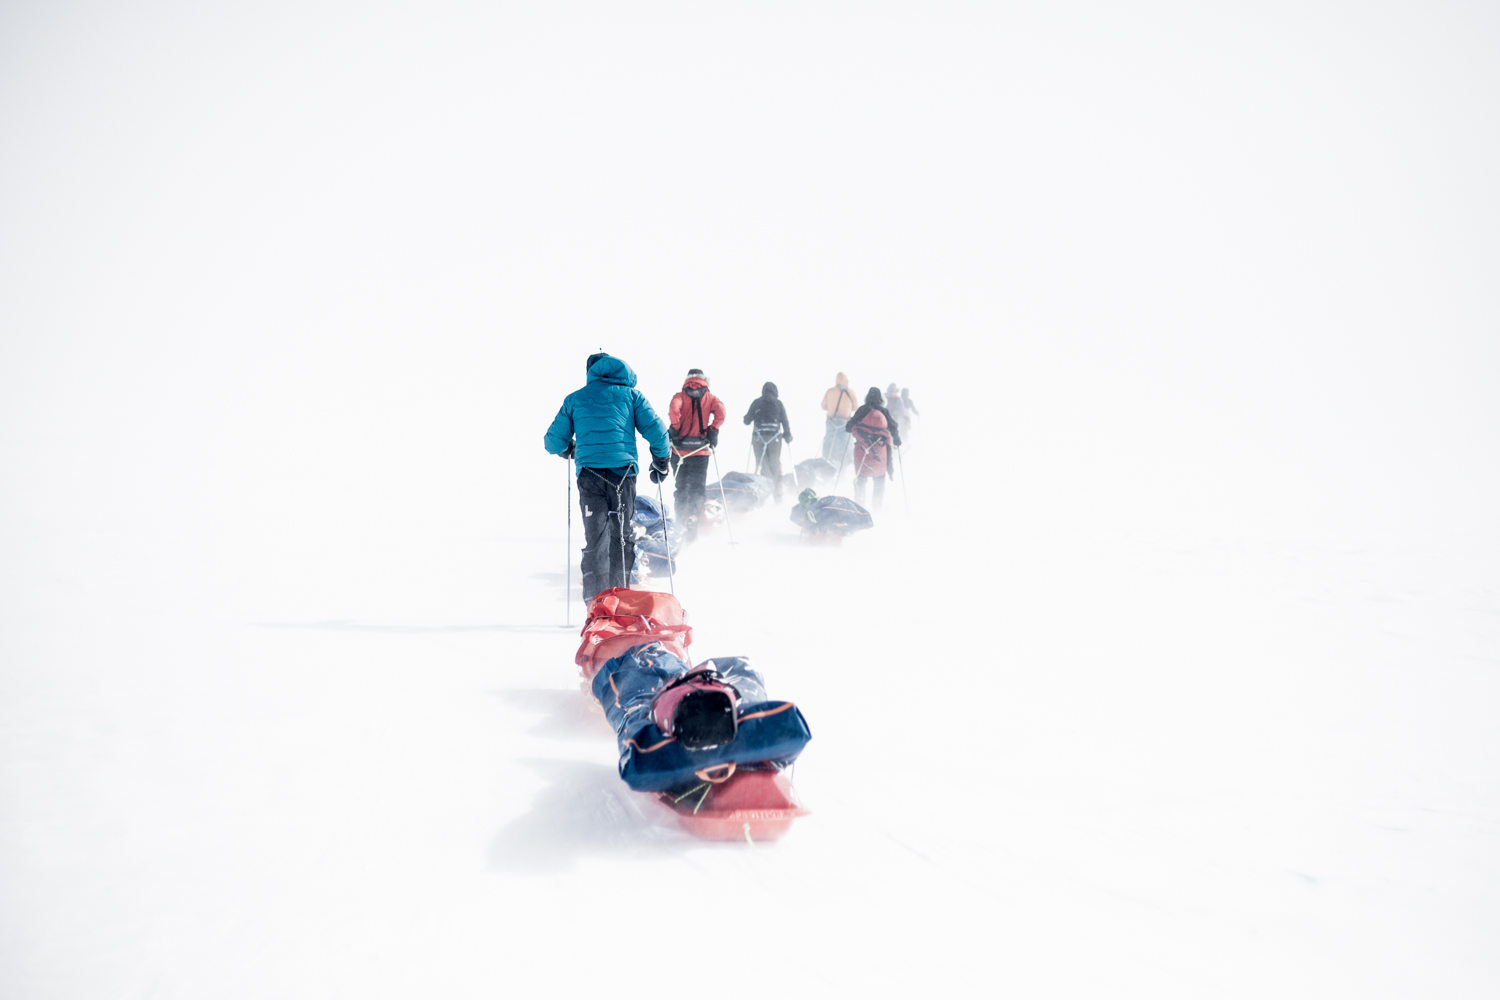 Crossing Greenland With Skis and Sleds - 600km Of Arctic